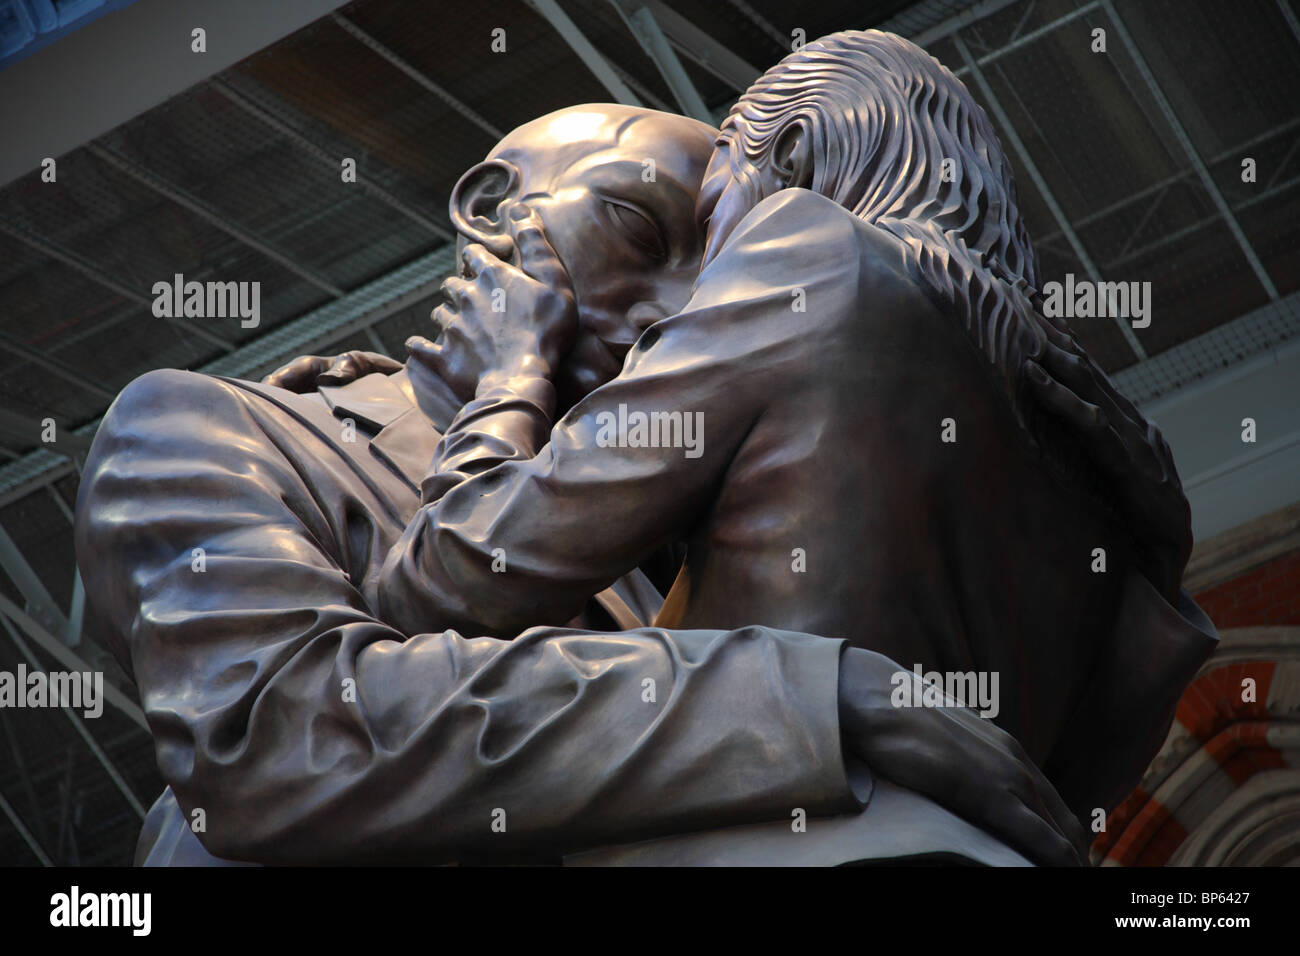 The Meeting Place sculpture, St Pancras Station, Camden, London, NW1. - Stock Image